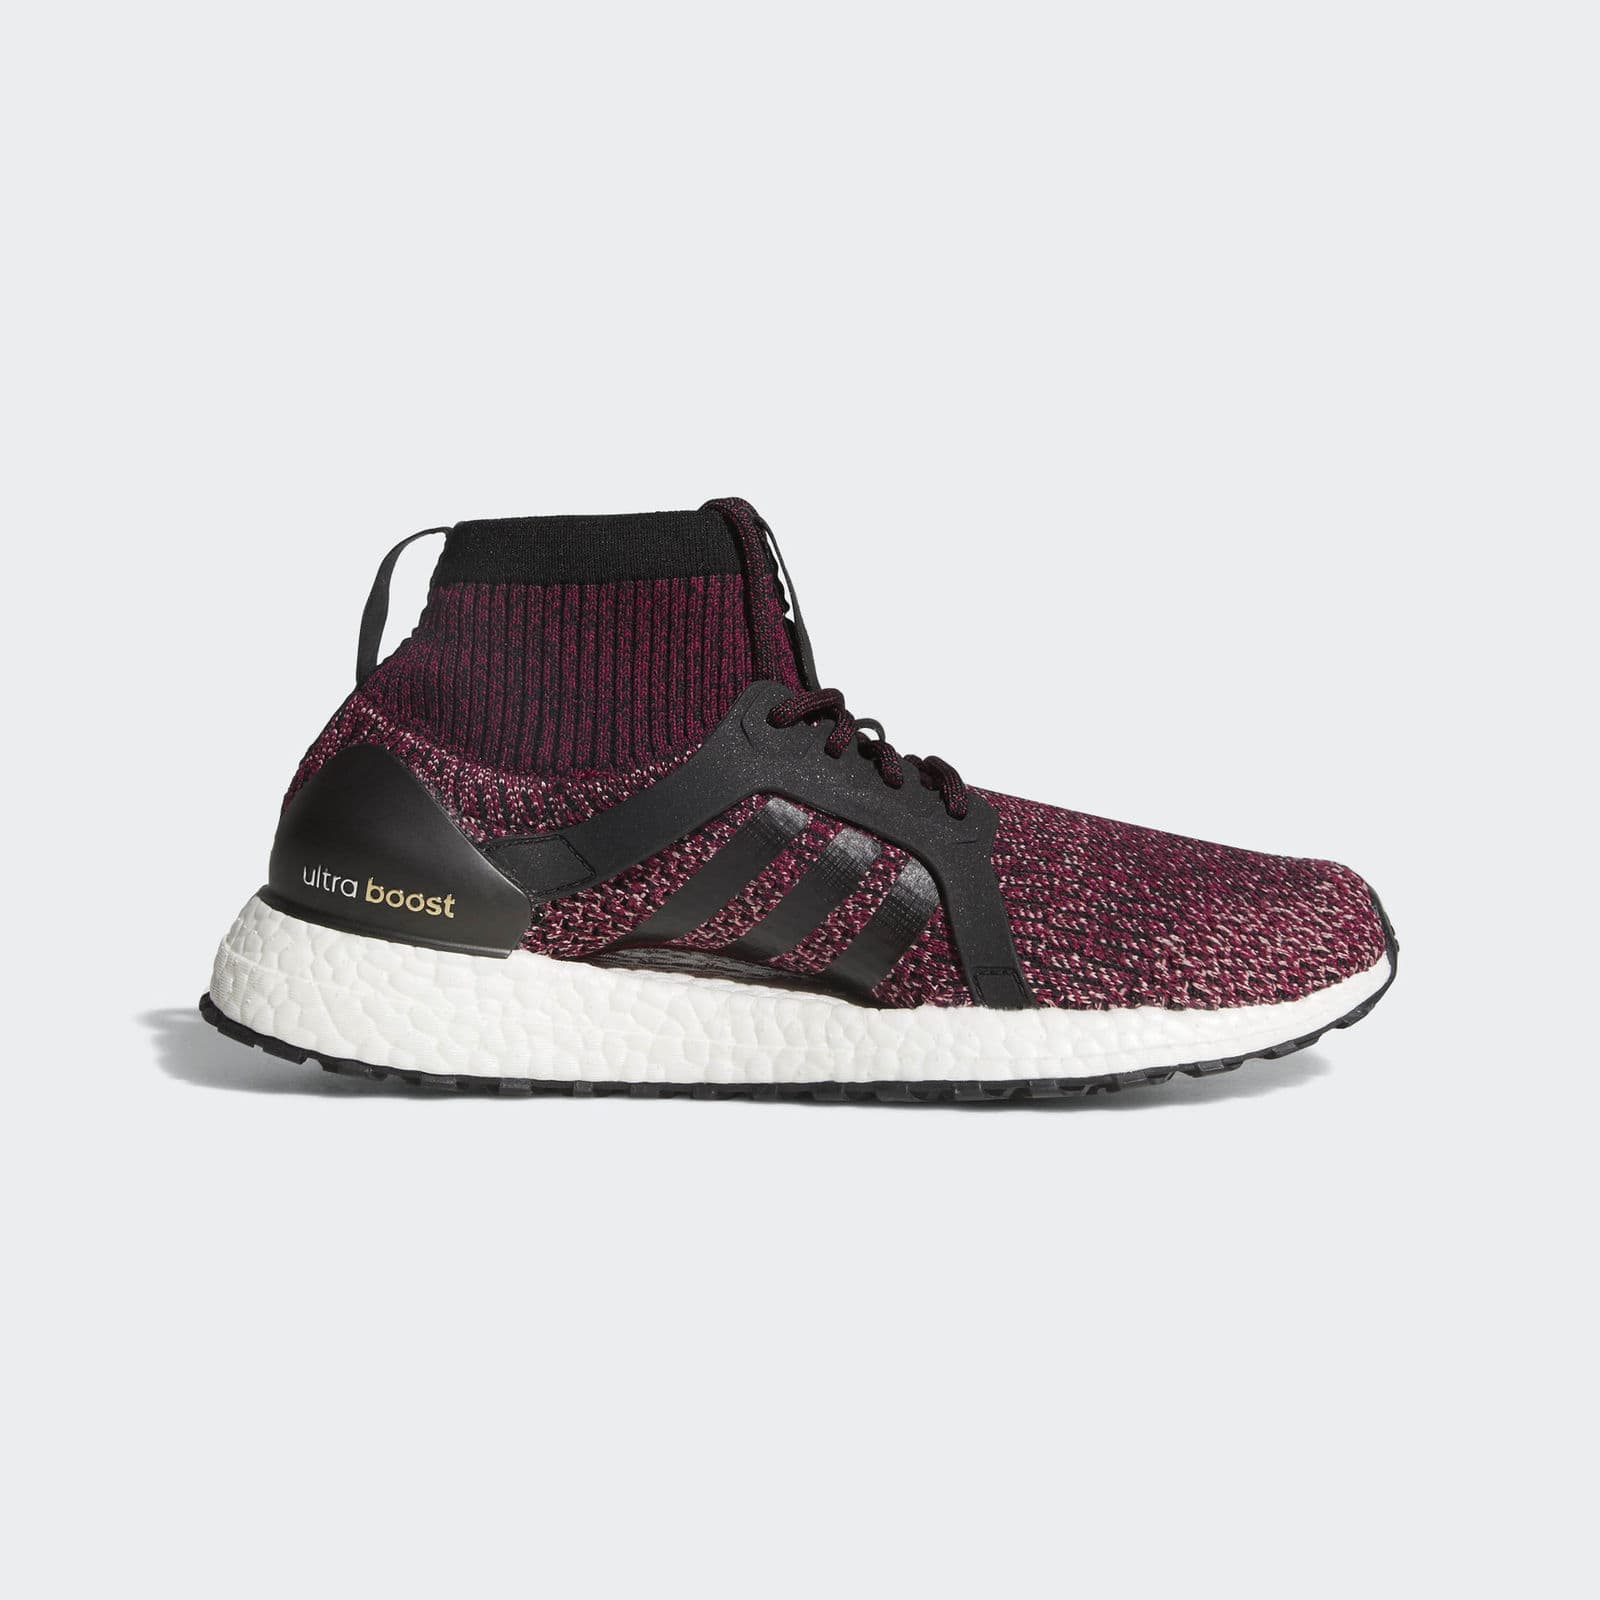 eeff4cc42497 adidas Ultraboost  Women s X Clima or X All Terrain Shoes ...